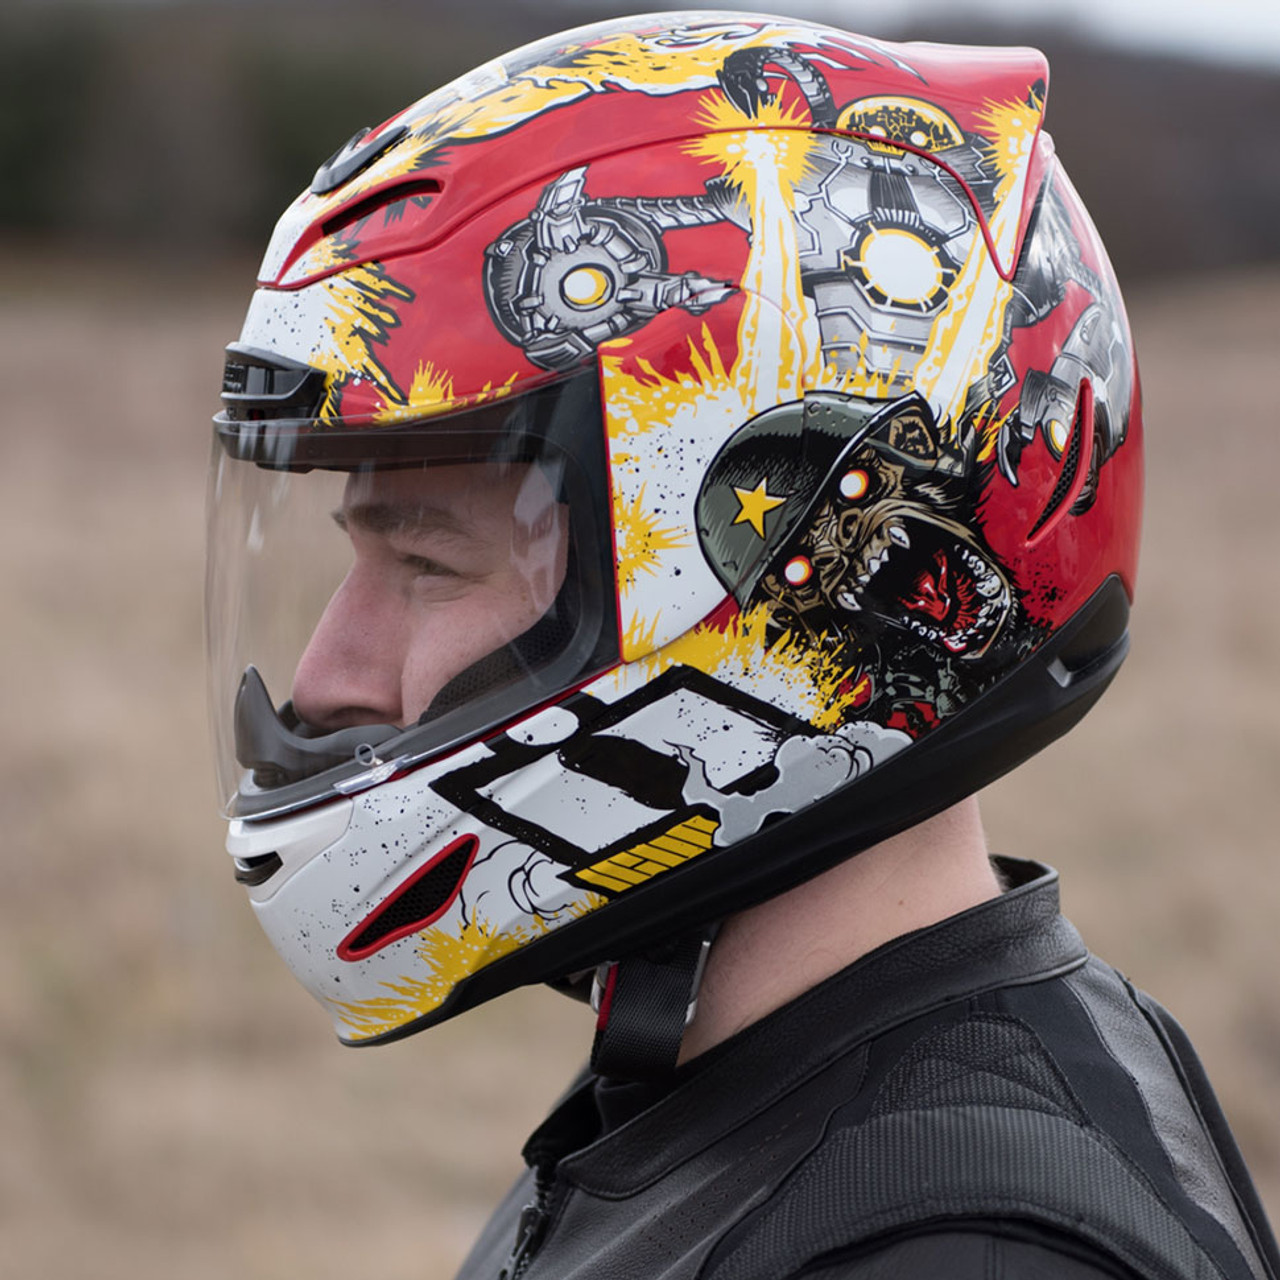 Icon Airmada Monkey Business Helmet Get Lowered Cycles